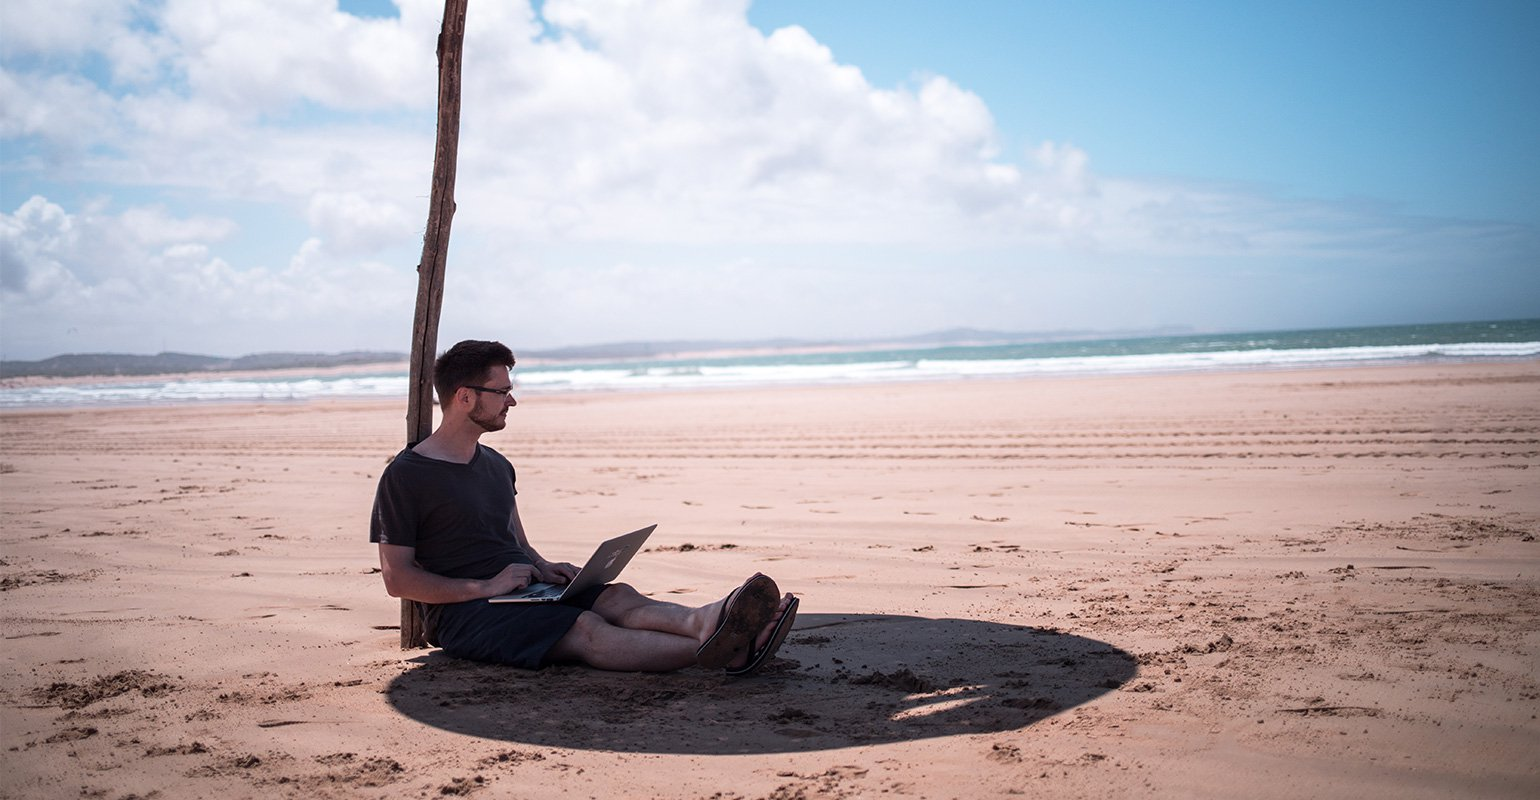 A man sitting on the beach under umbrella thinking: Remote work: opportunity or threat?